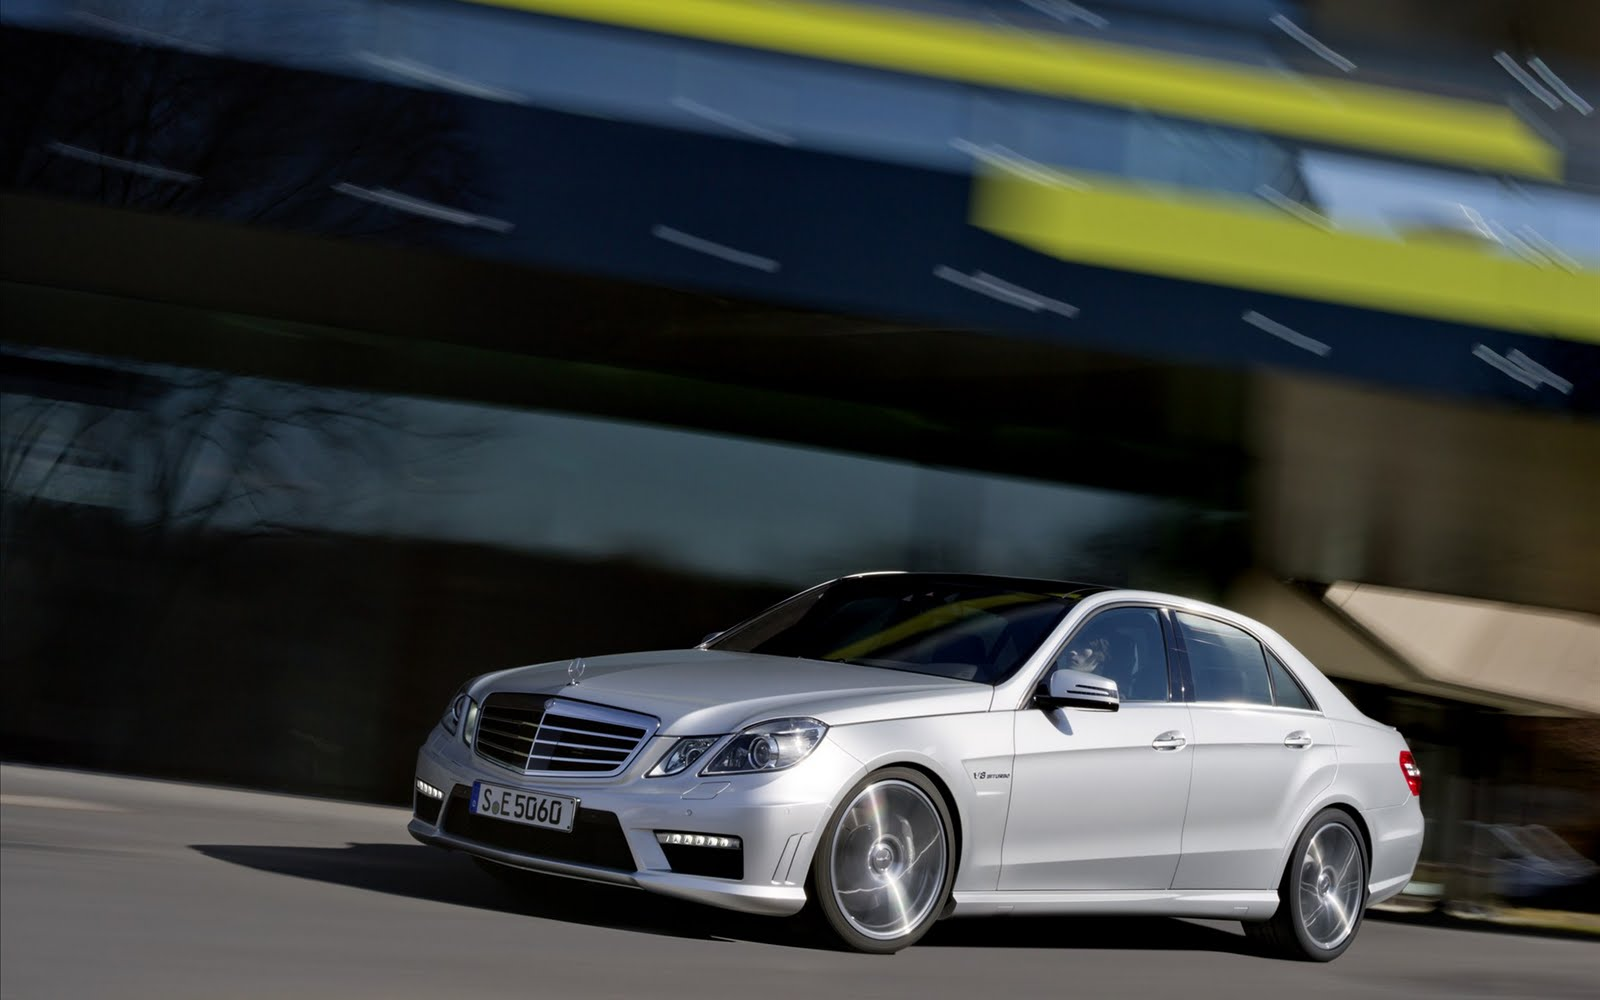 Wallpaper Gallery: Mercedes E63 AMG to get 5.5 liter V8 engine